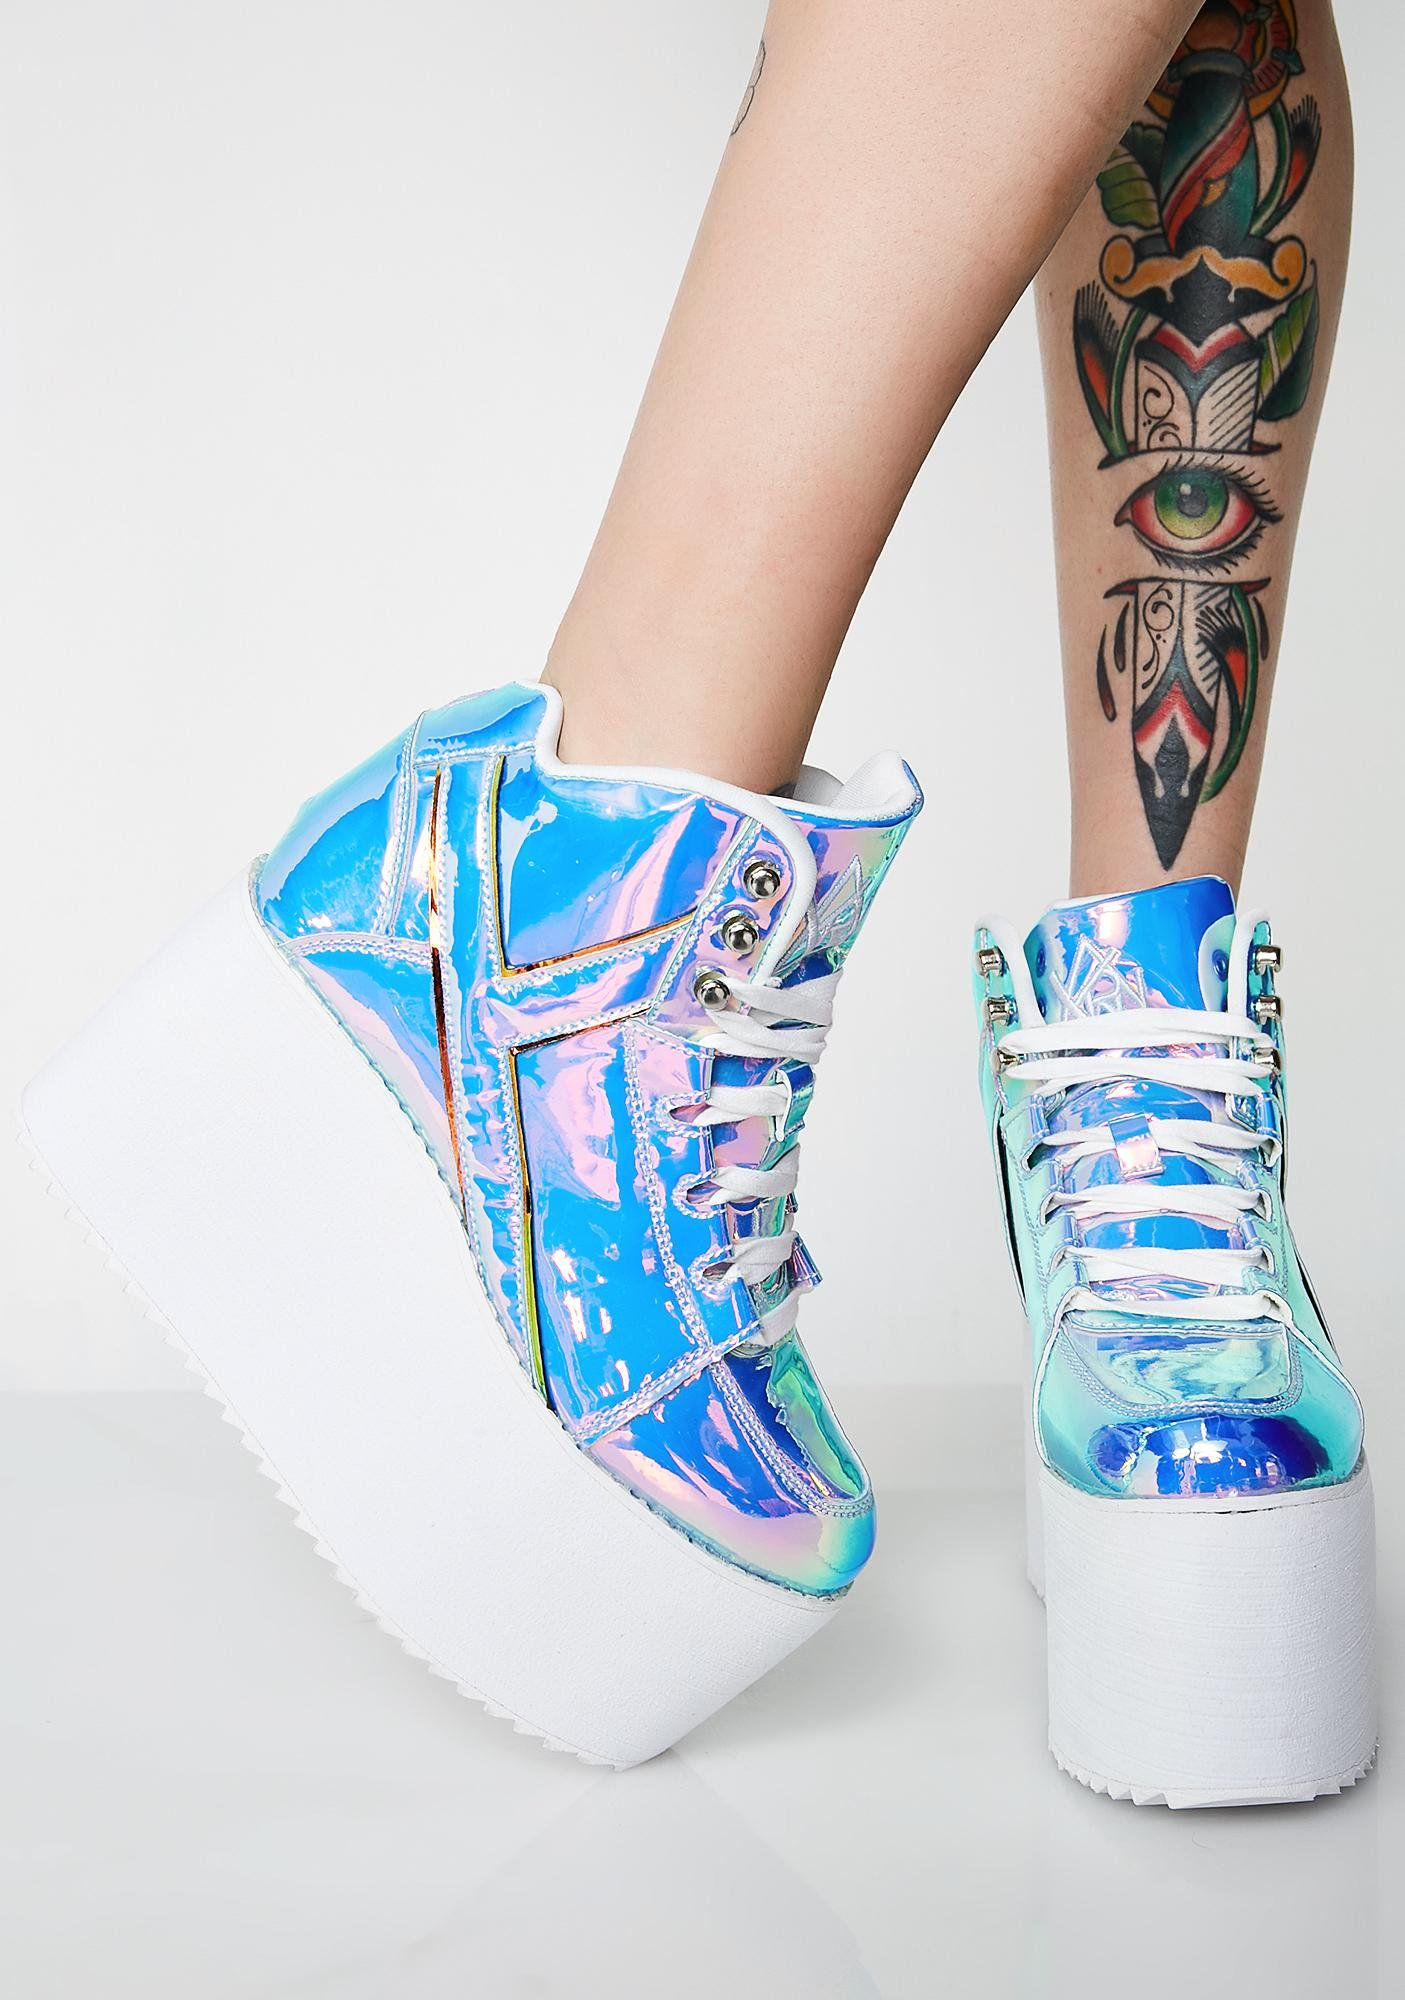 5741a21975e Y.R.U. Euphoria Qozmo Platform Sneakers got ya on cloud nine. These sikk af  sneakers have a shiny iridescent exterior